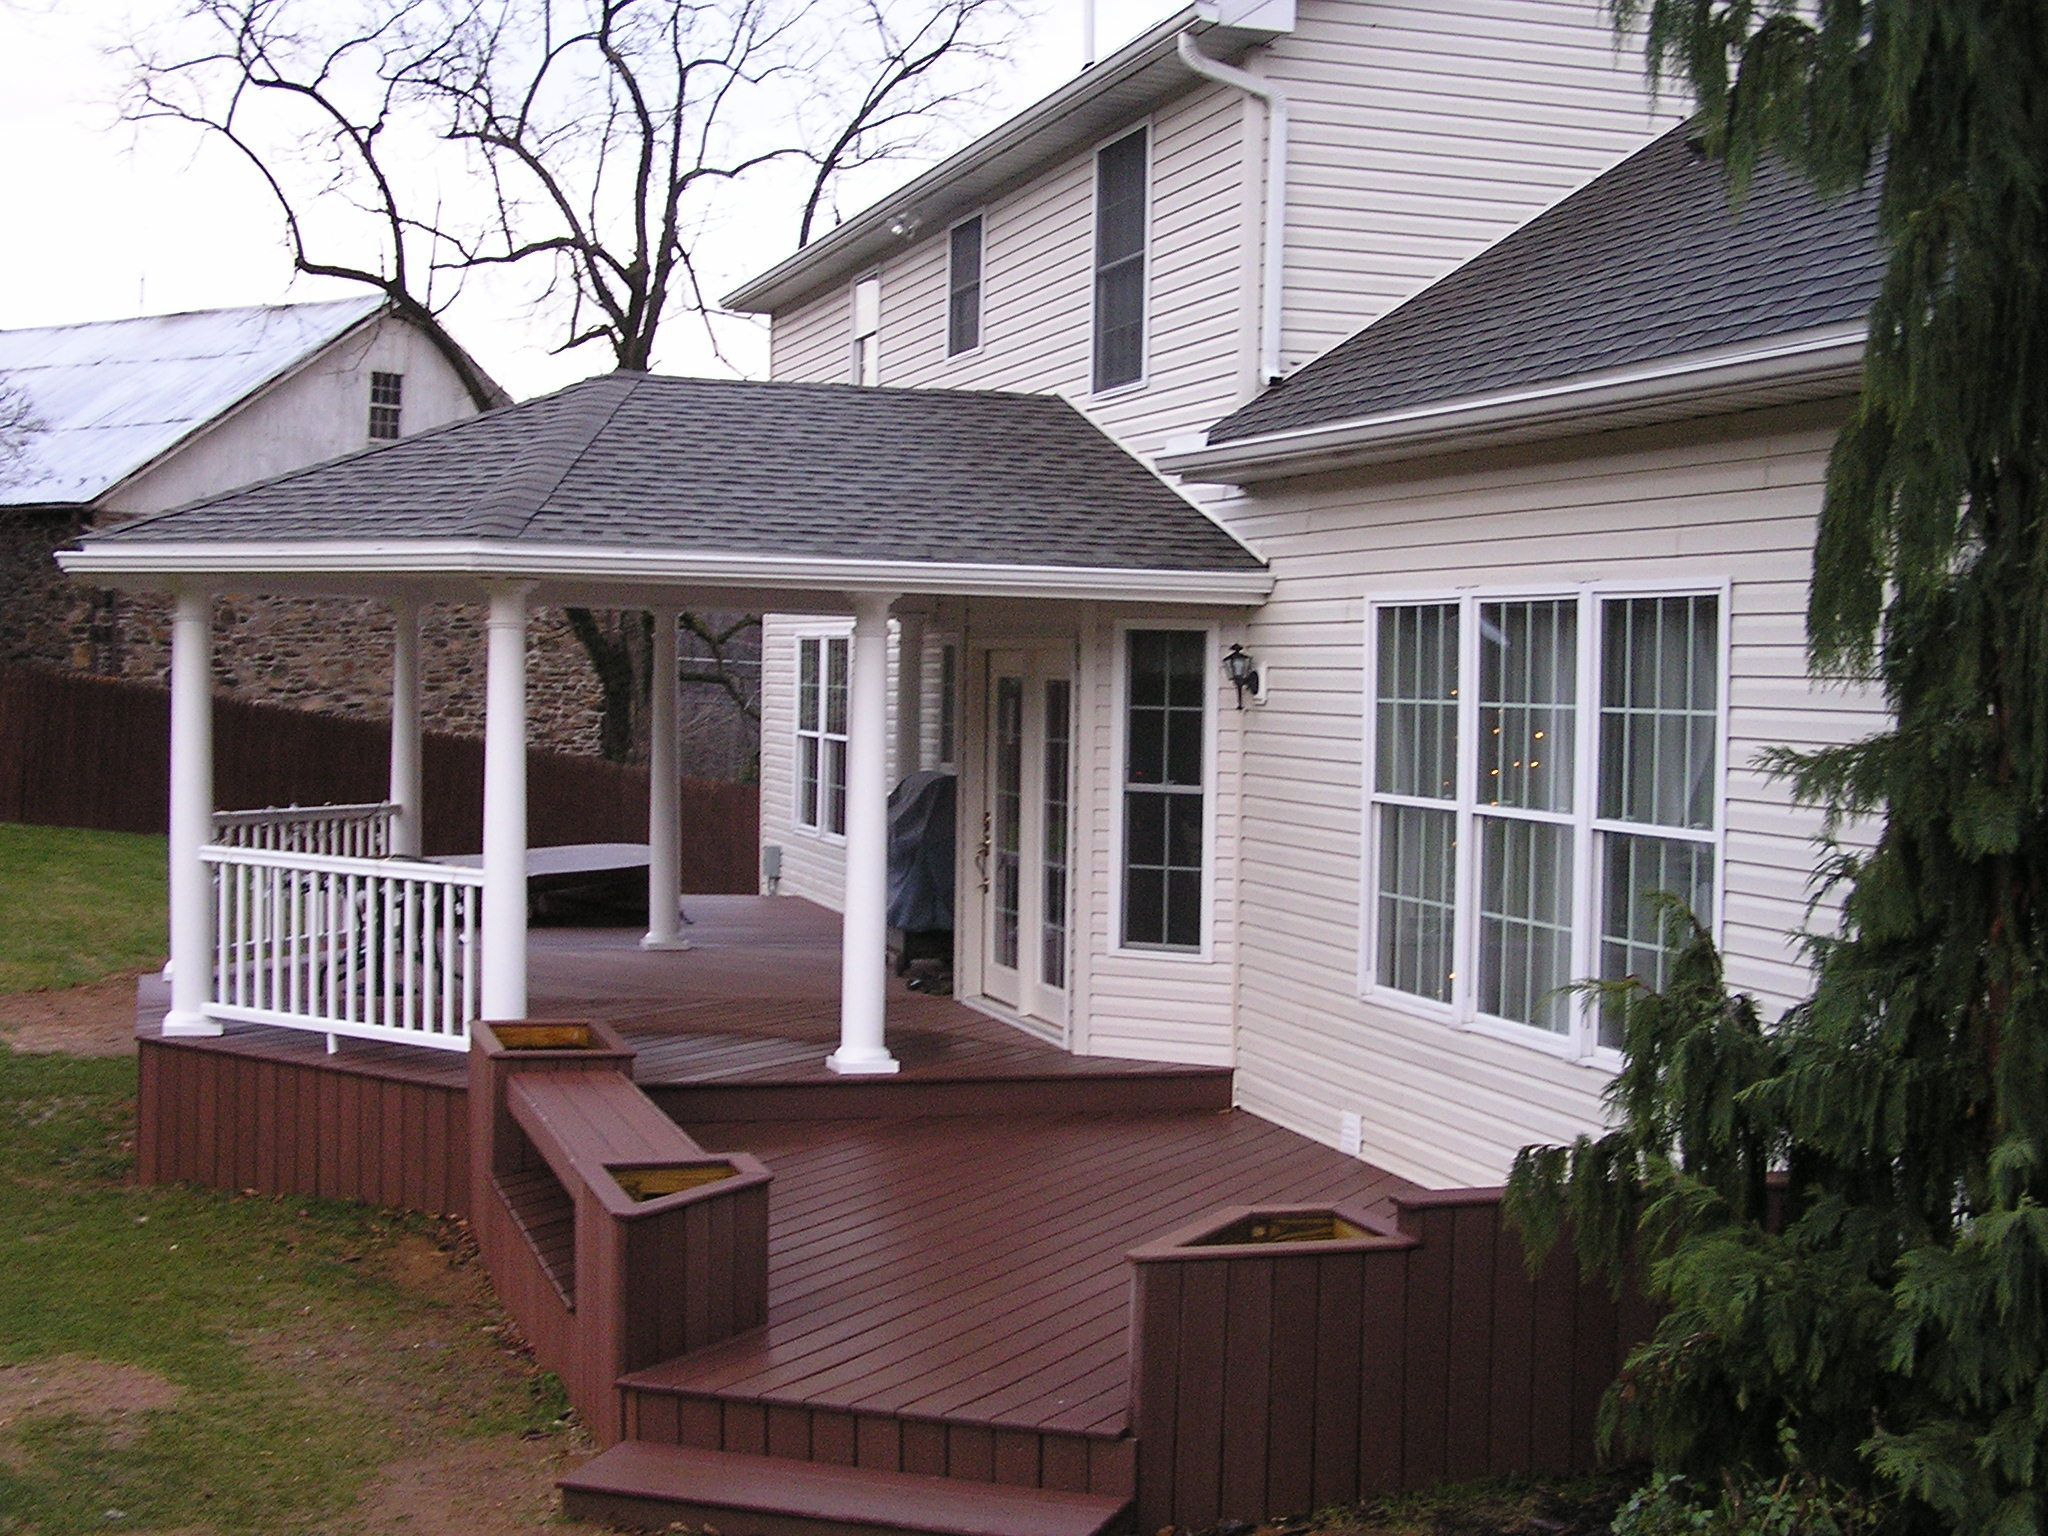 Covered Porch Deck With Built In Garden Planters